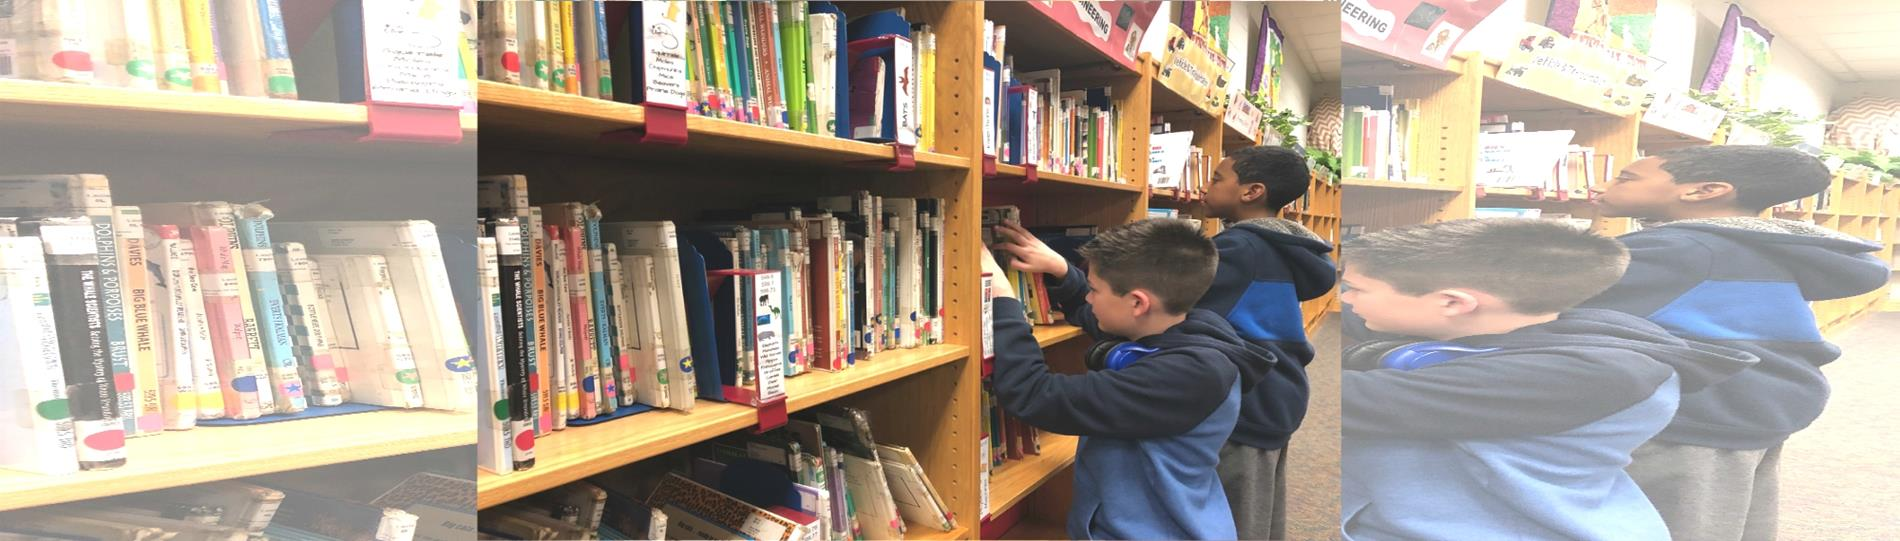 Kids looking for books